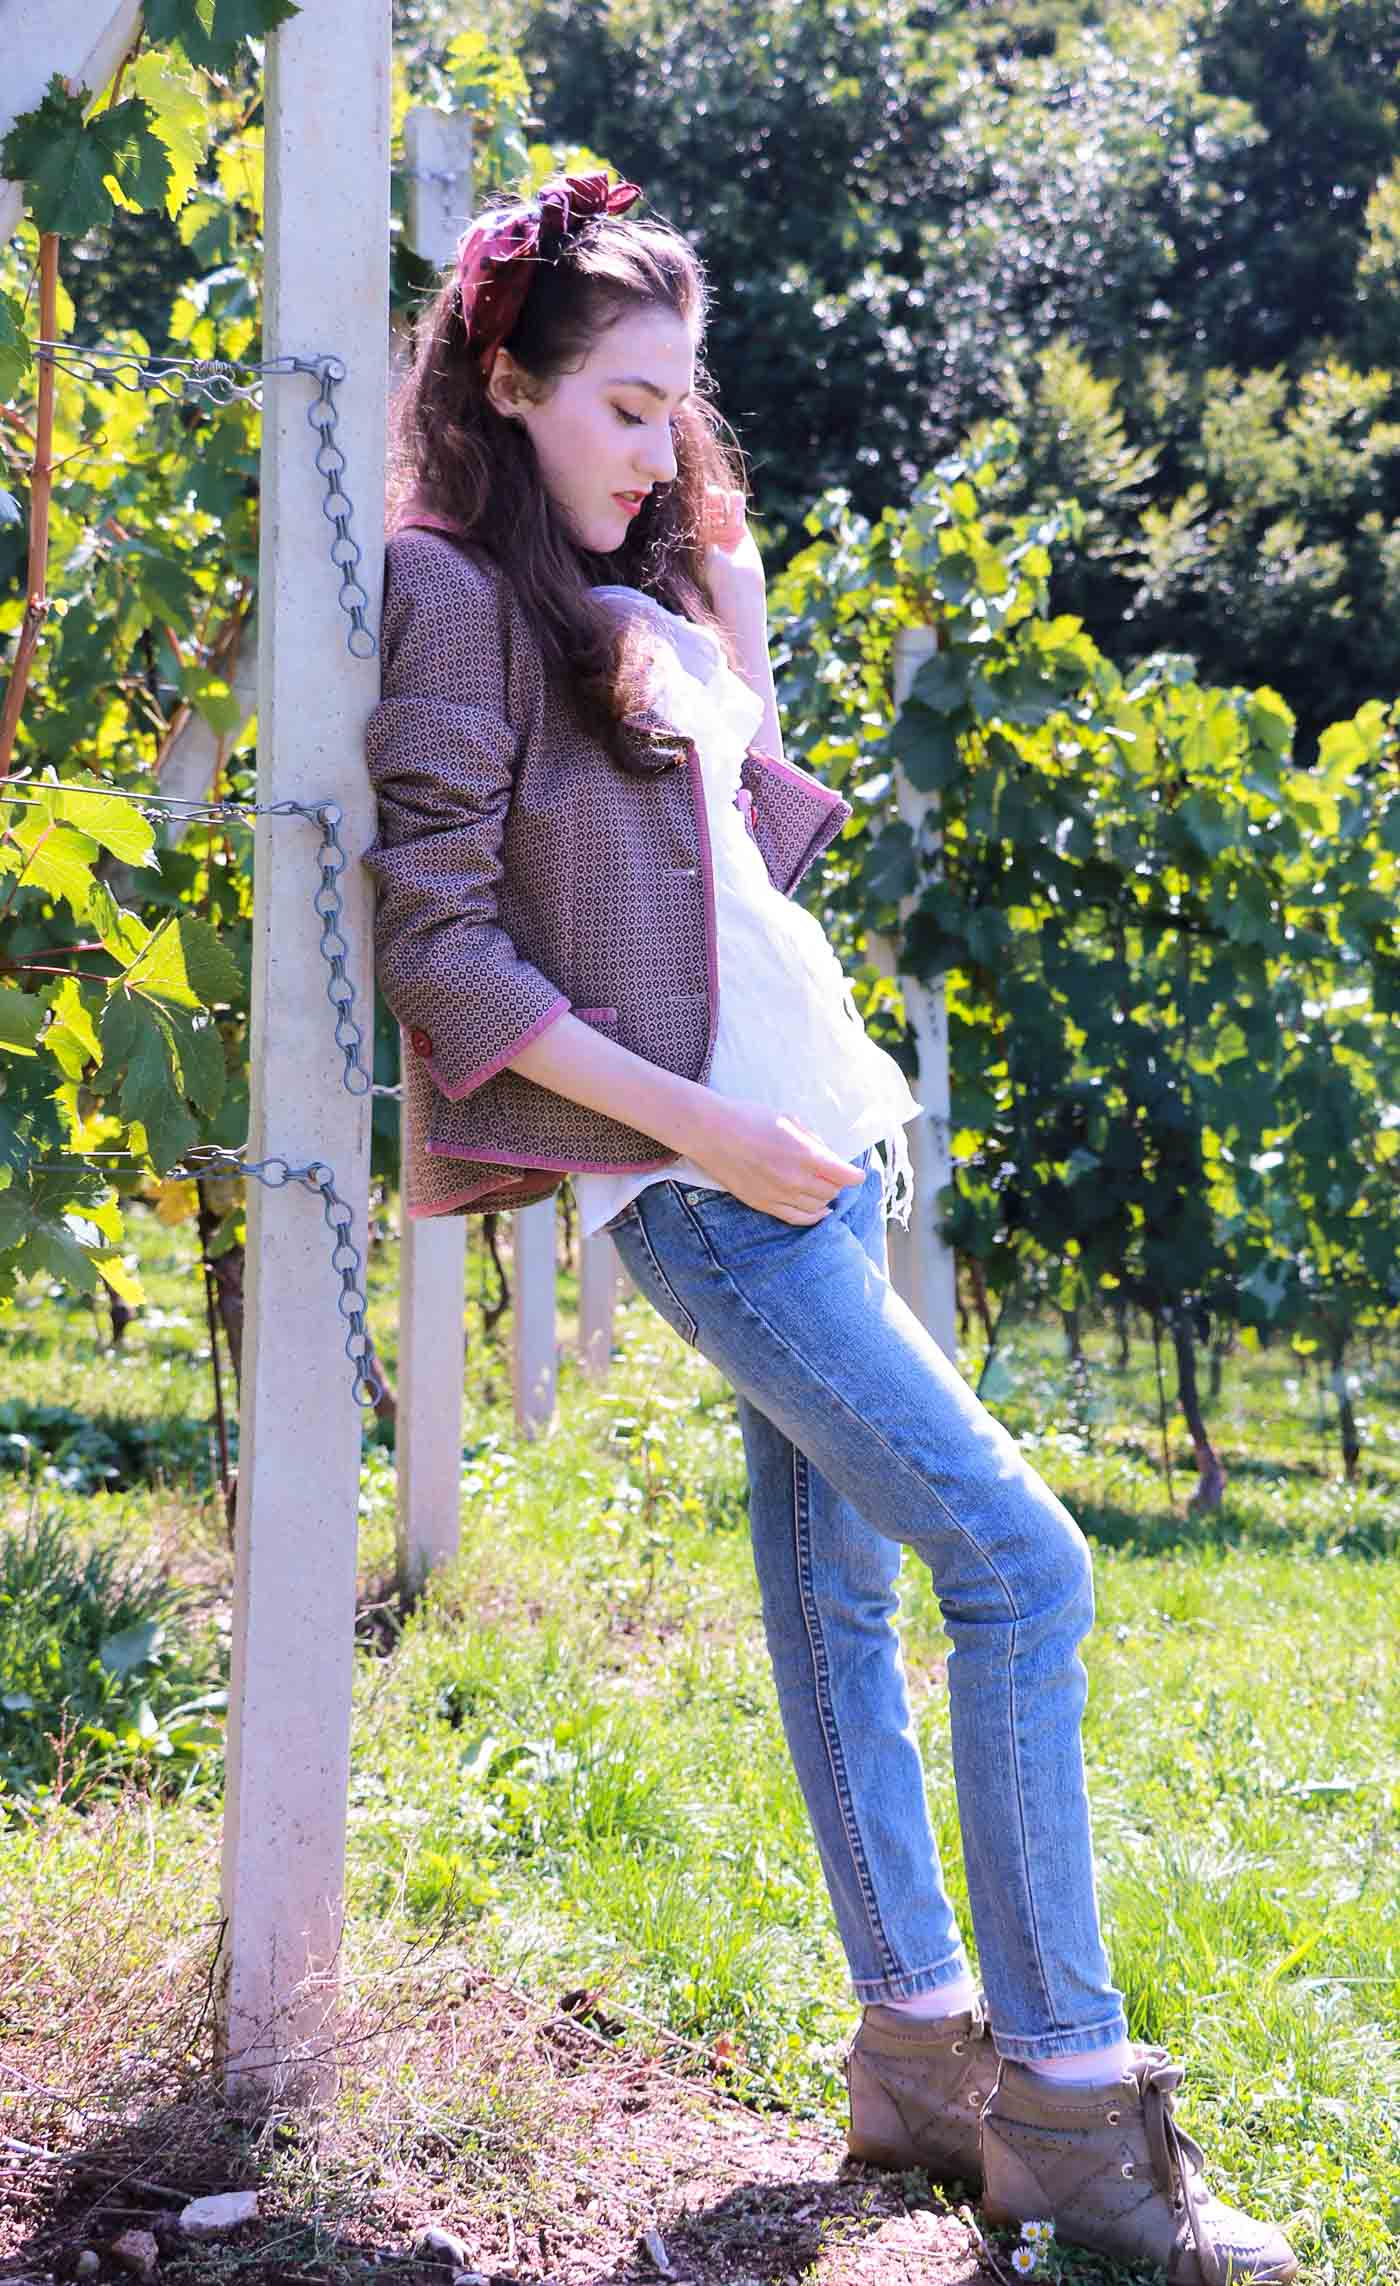 Fashion Blogger Veronika Lipar of Brunette from Wall Street in vineyard dressed in retro printed tweed blazer, blue mom jeans, bobby sneaker, head scarf, gloves